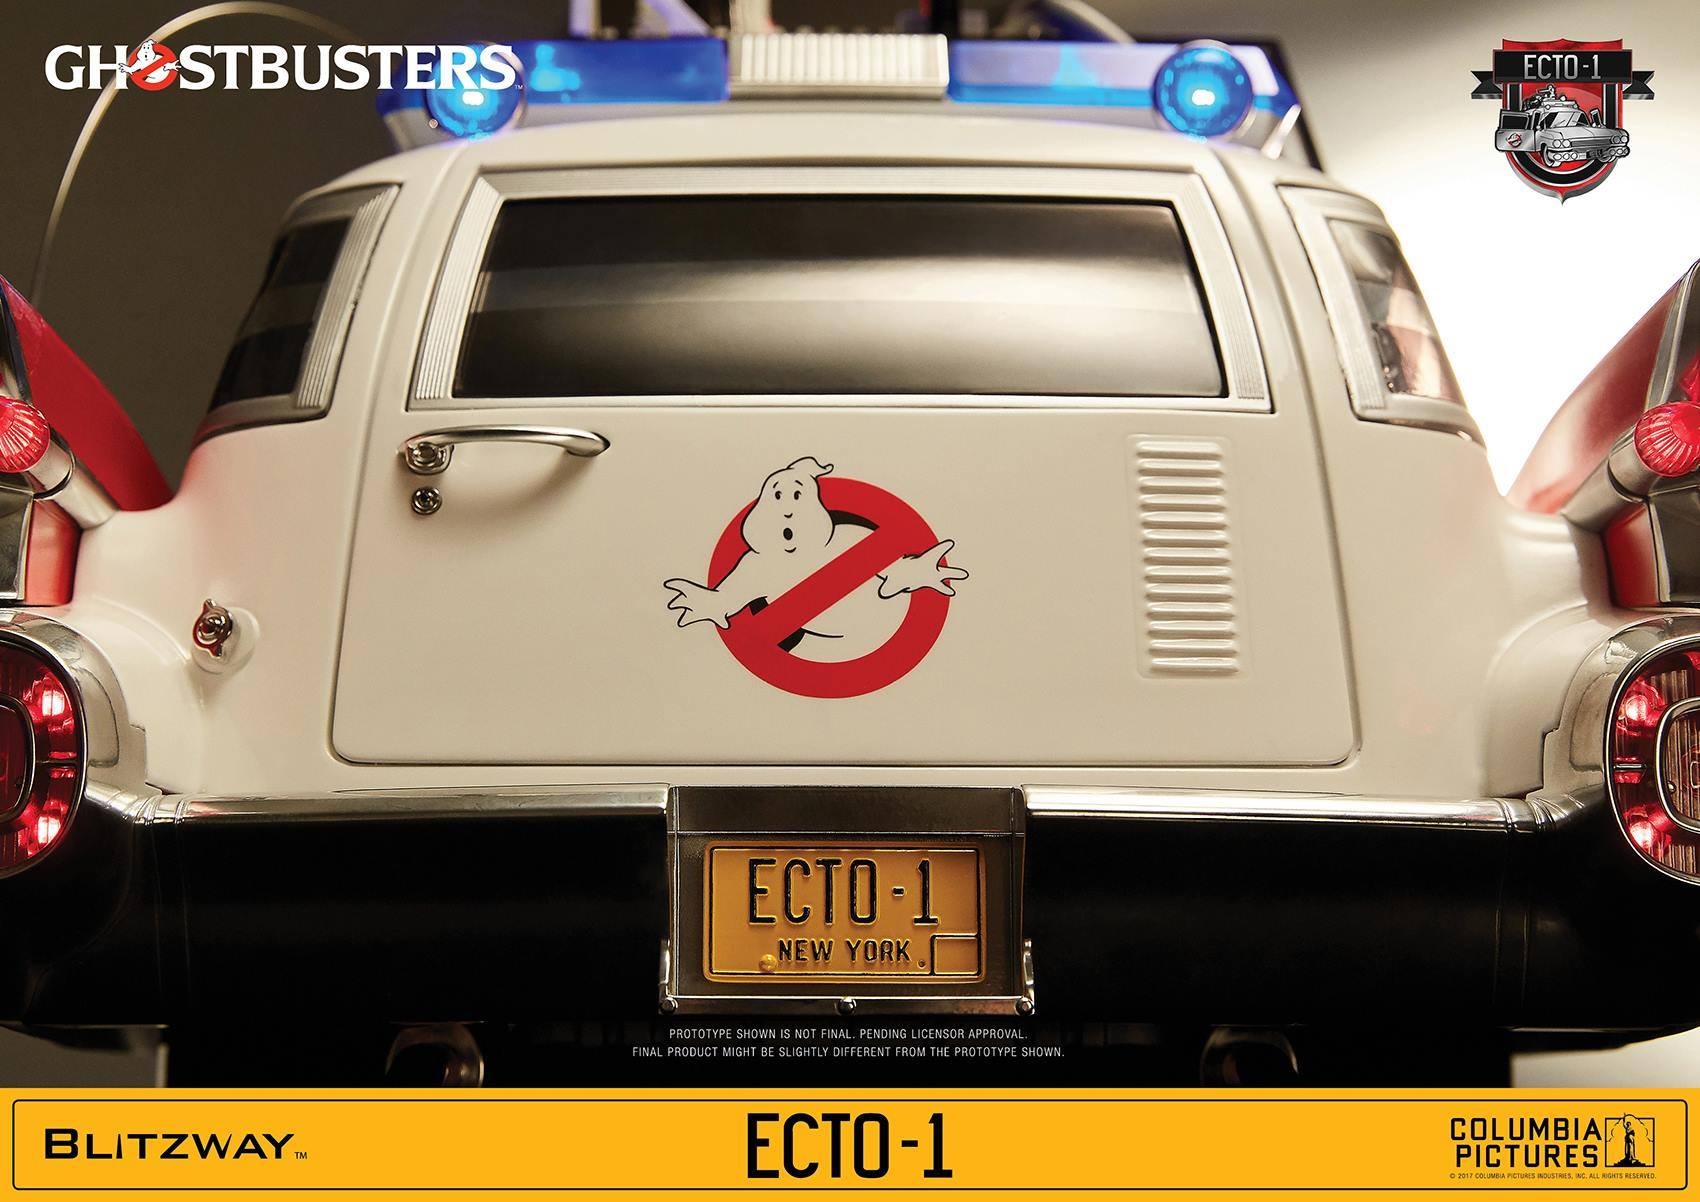 Blitzway - Ghostbusters (1984) - Ecto-1